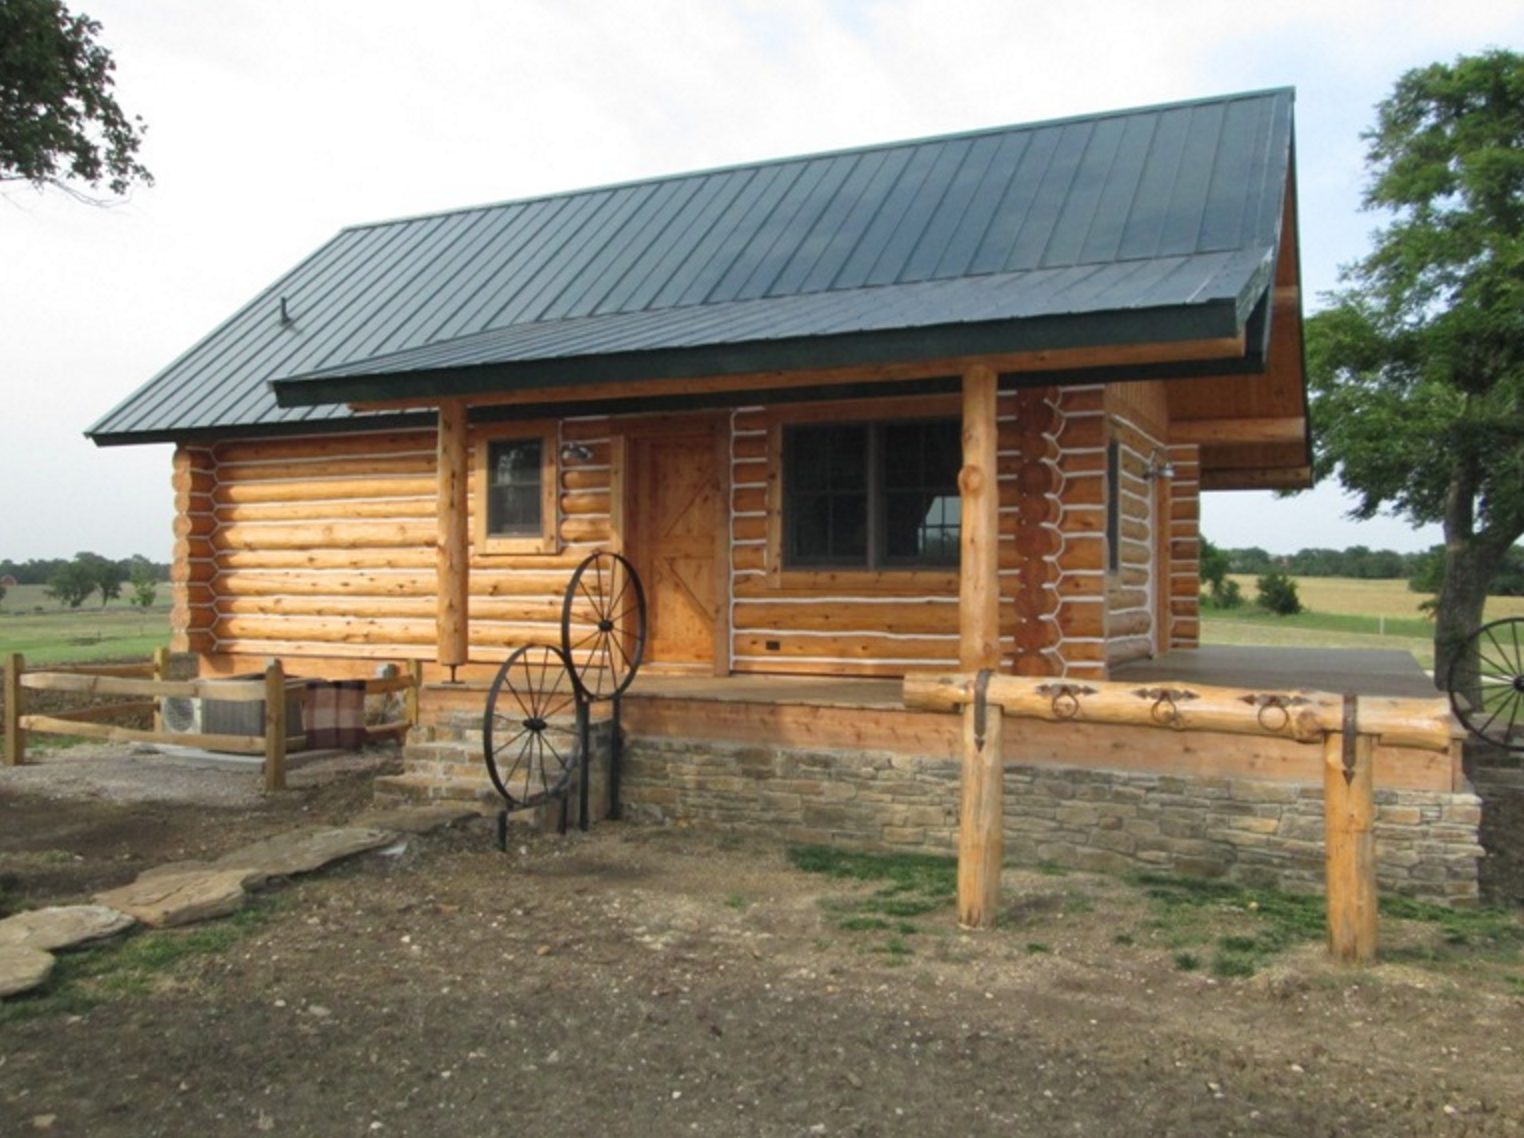 Exterior of log cabin with covered porch